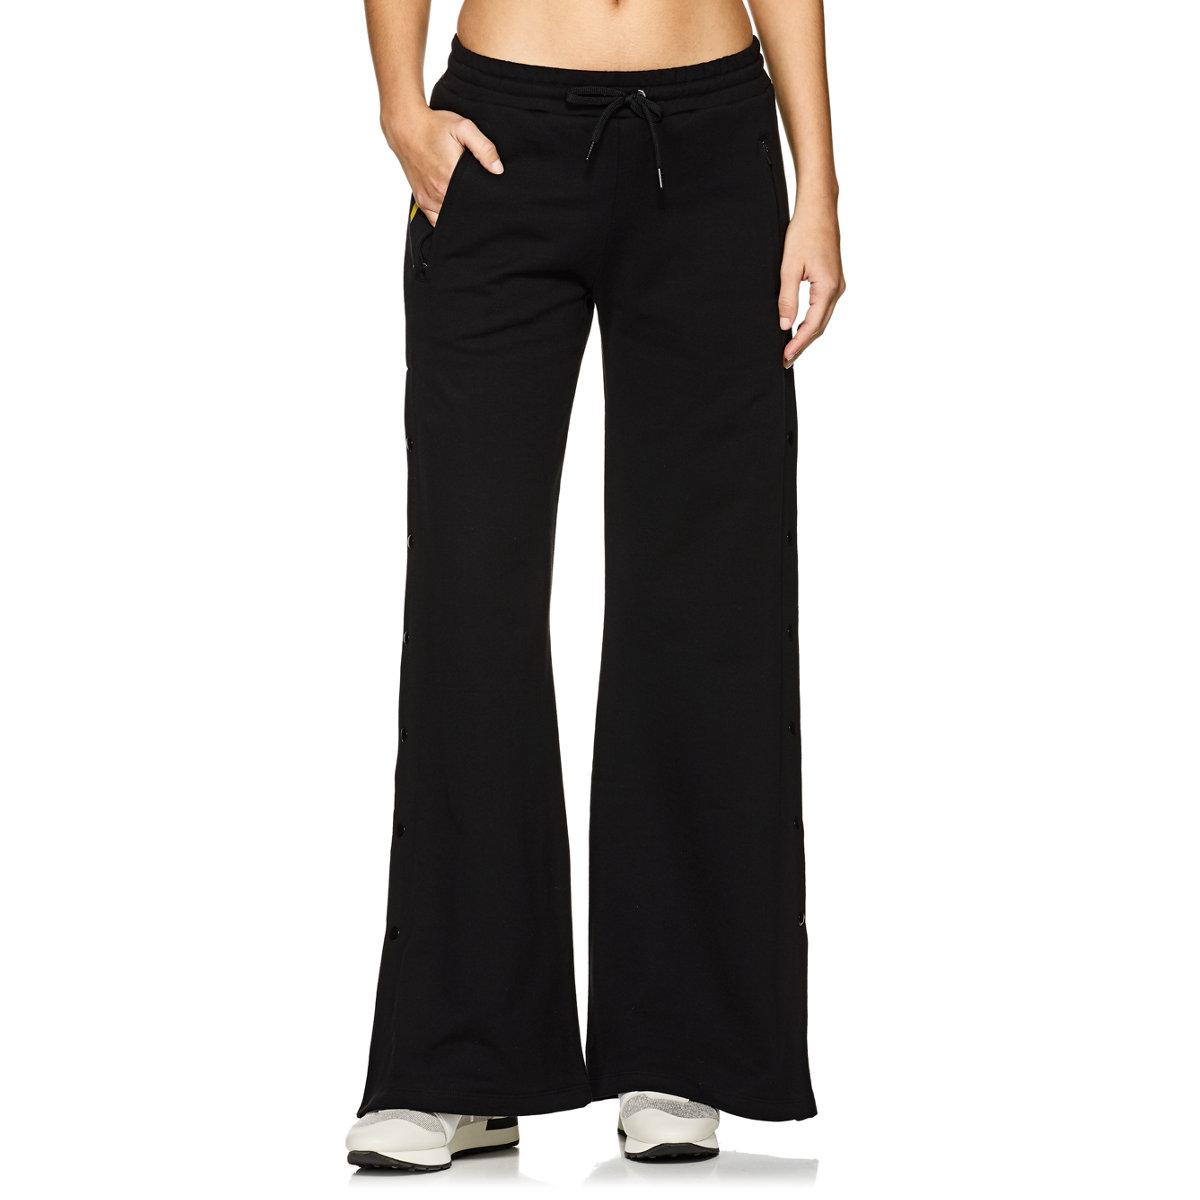 Womens Luna Cotton French Terry Pants S Discount Codes Shopping Online Where Can I Order sjdMYGH5f